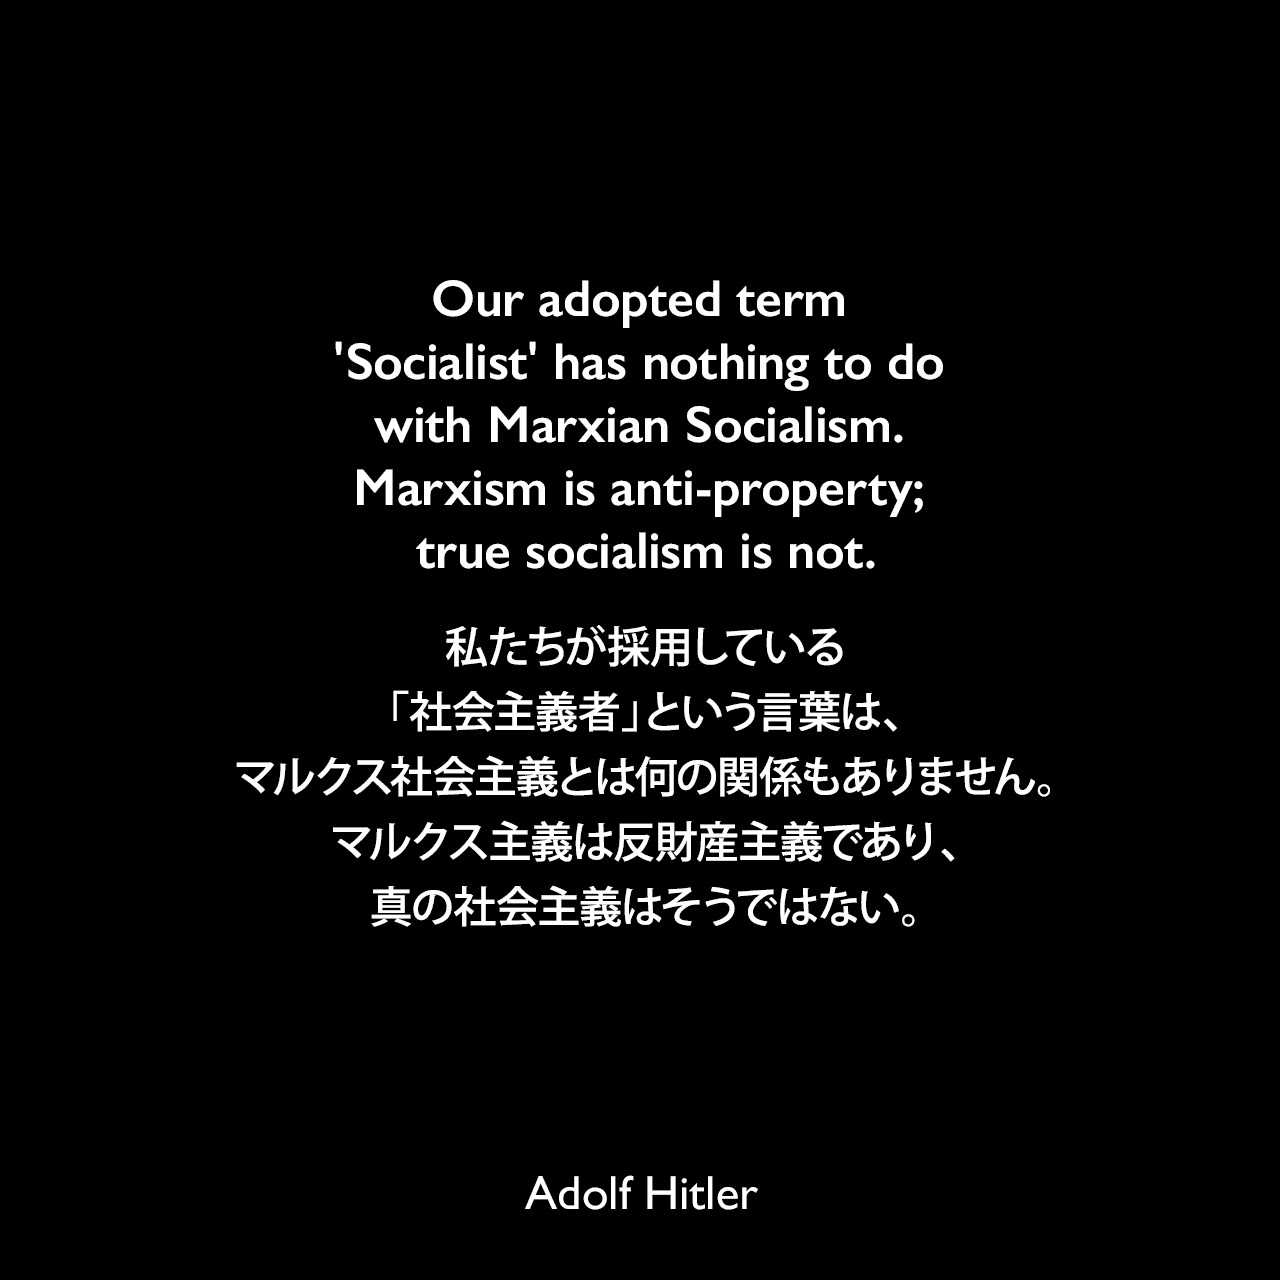 Our adopted term 'Socialist' has nothing to do with Marxian Socialism. Marxism is anti-property; true socialism is not.私たちが採用している「社会主義者」という言葉は、マルクス社会主義とは何の関係もありません。マルクス主義は反財産主義であり、真の社会主義はそうではない。- 1938年12月28日ヒトラーのスピーチよりAdolf Hitler